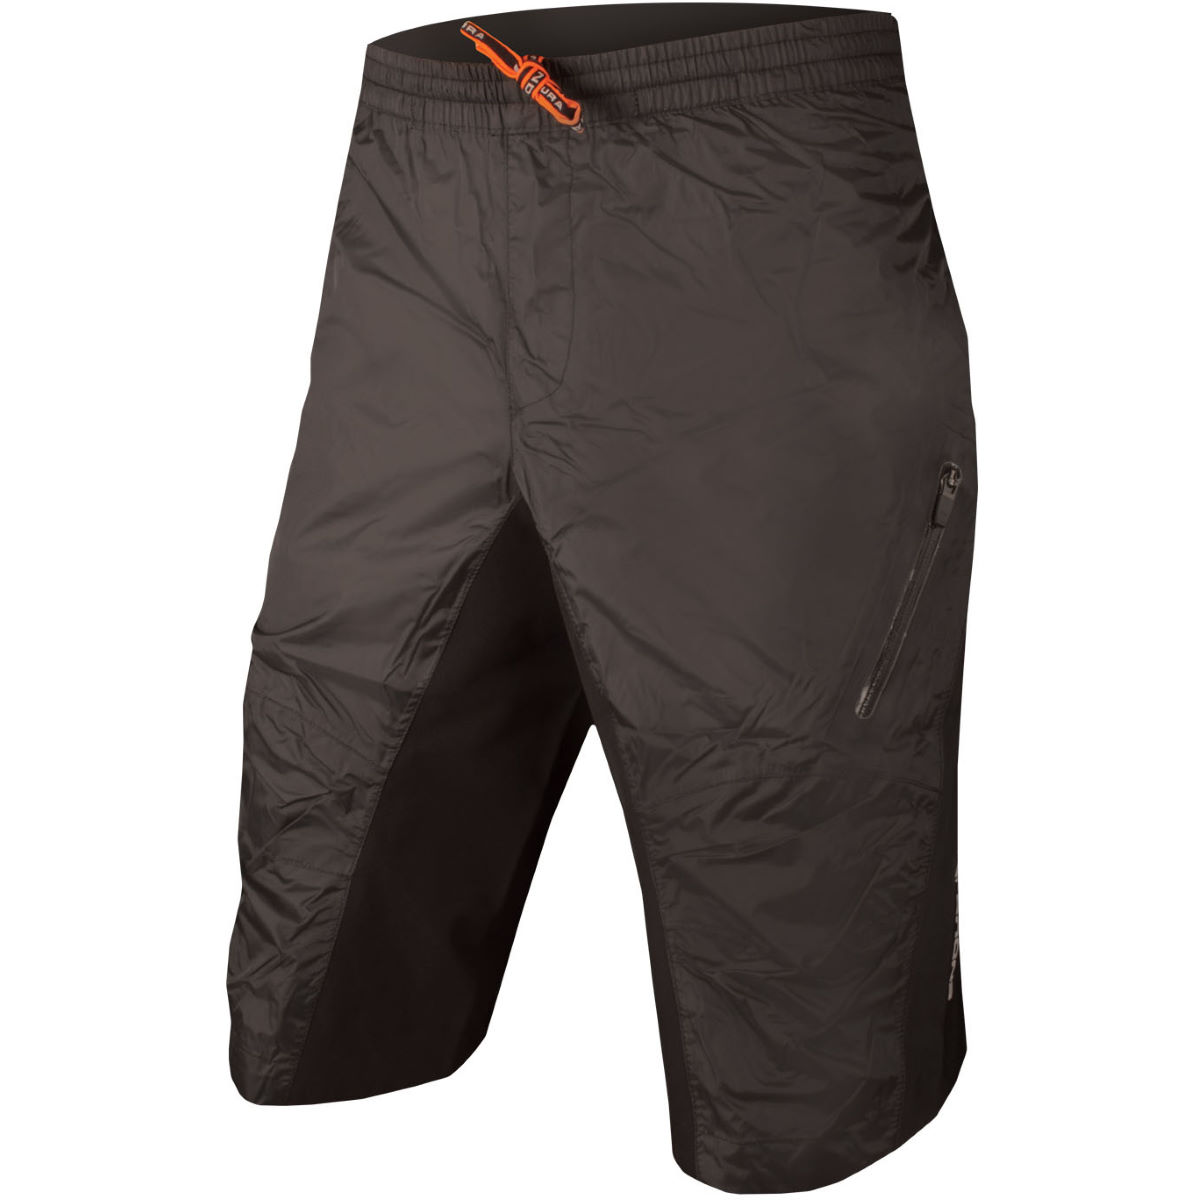 Short Endura Superlite - L Noir Shorts VTT